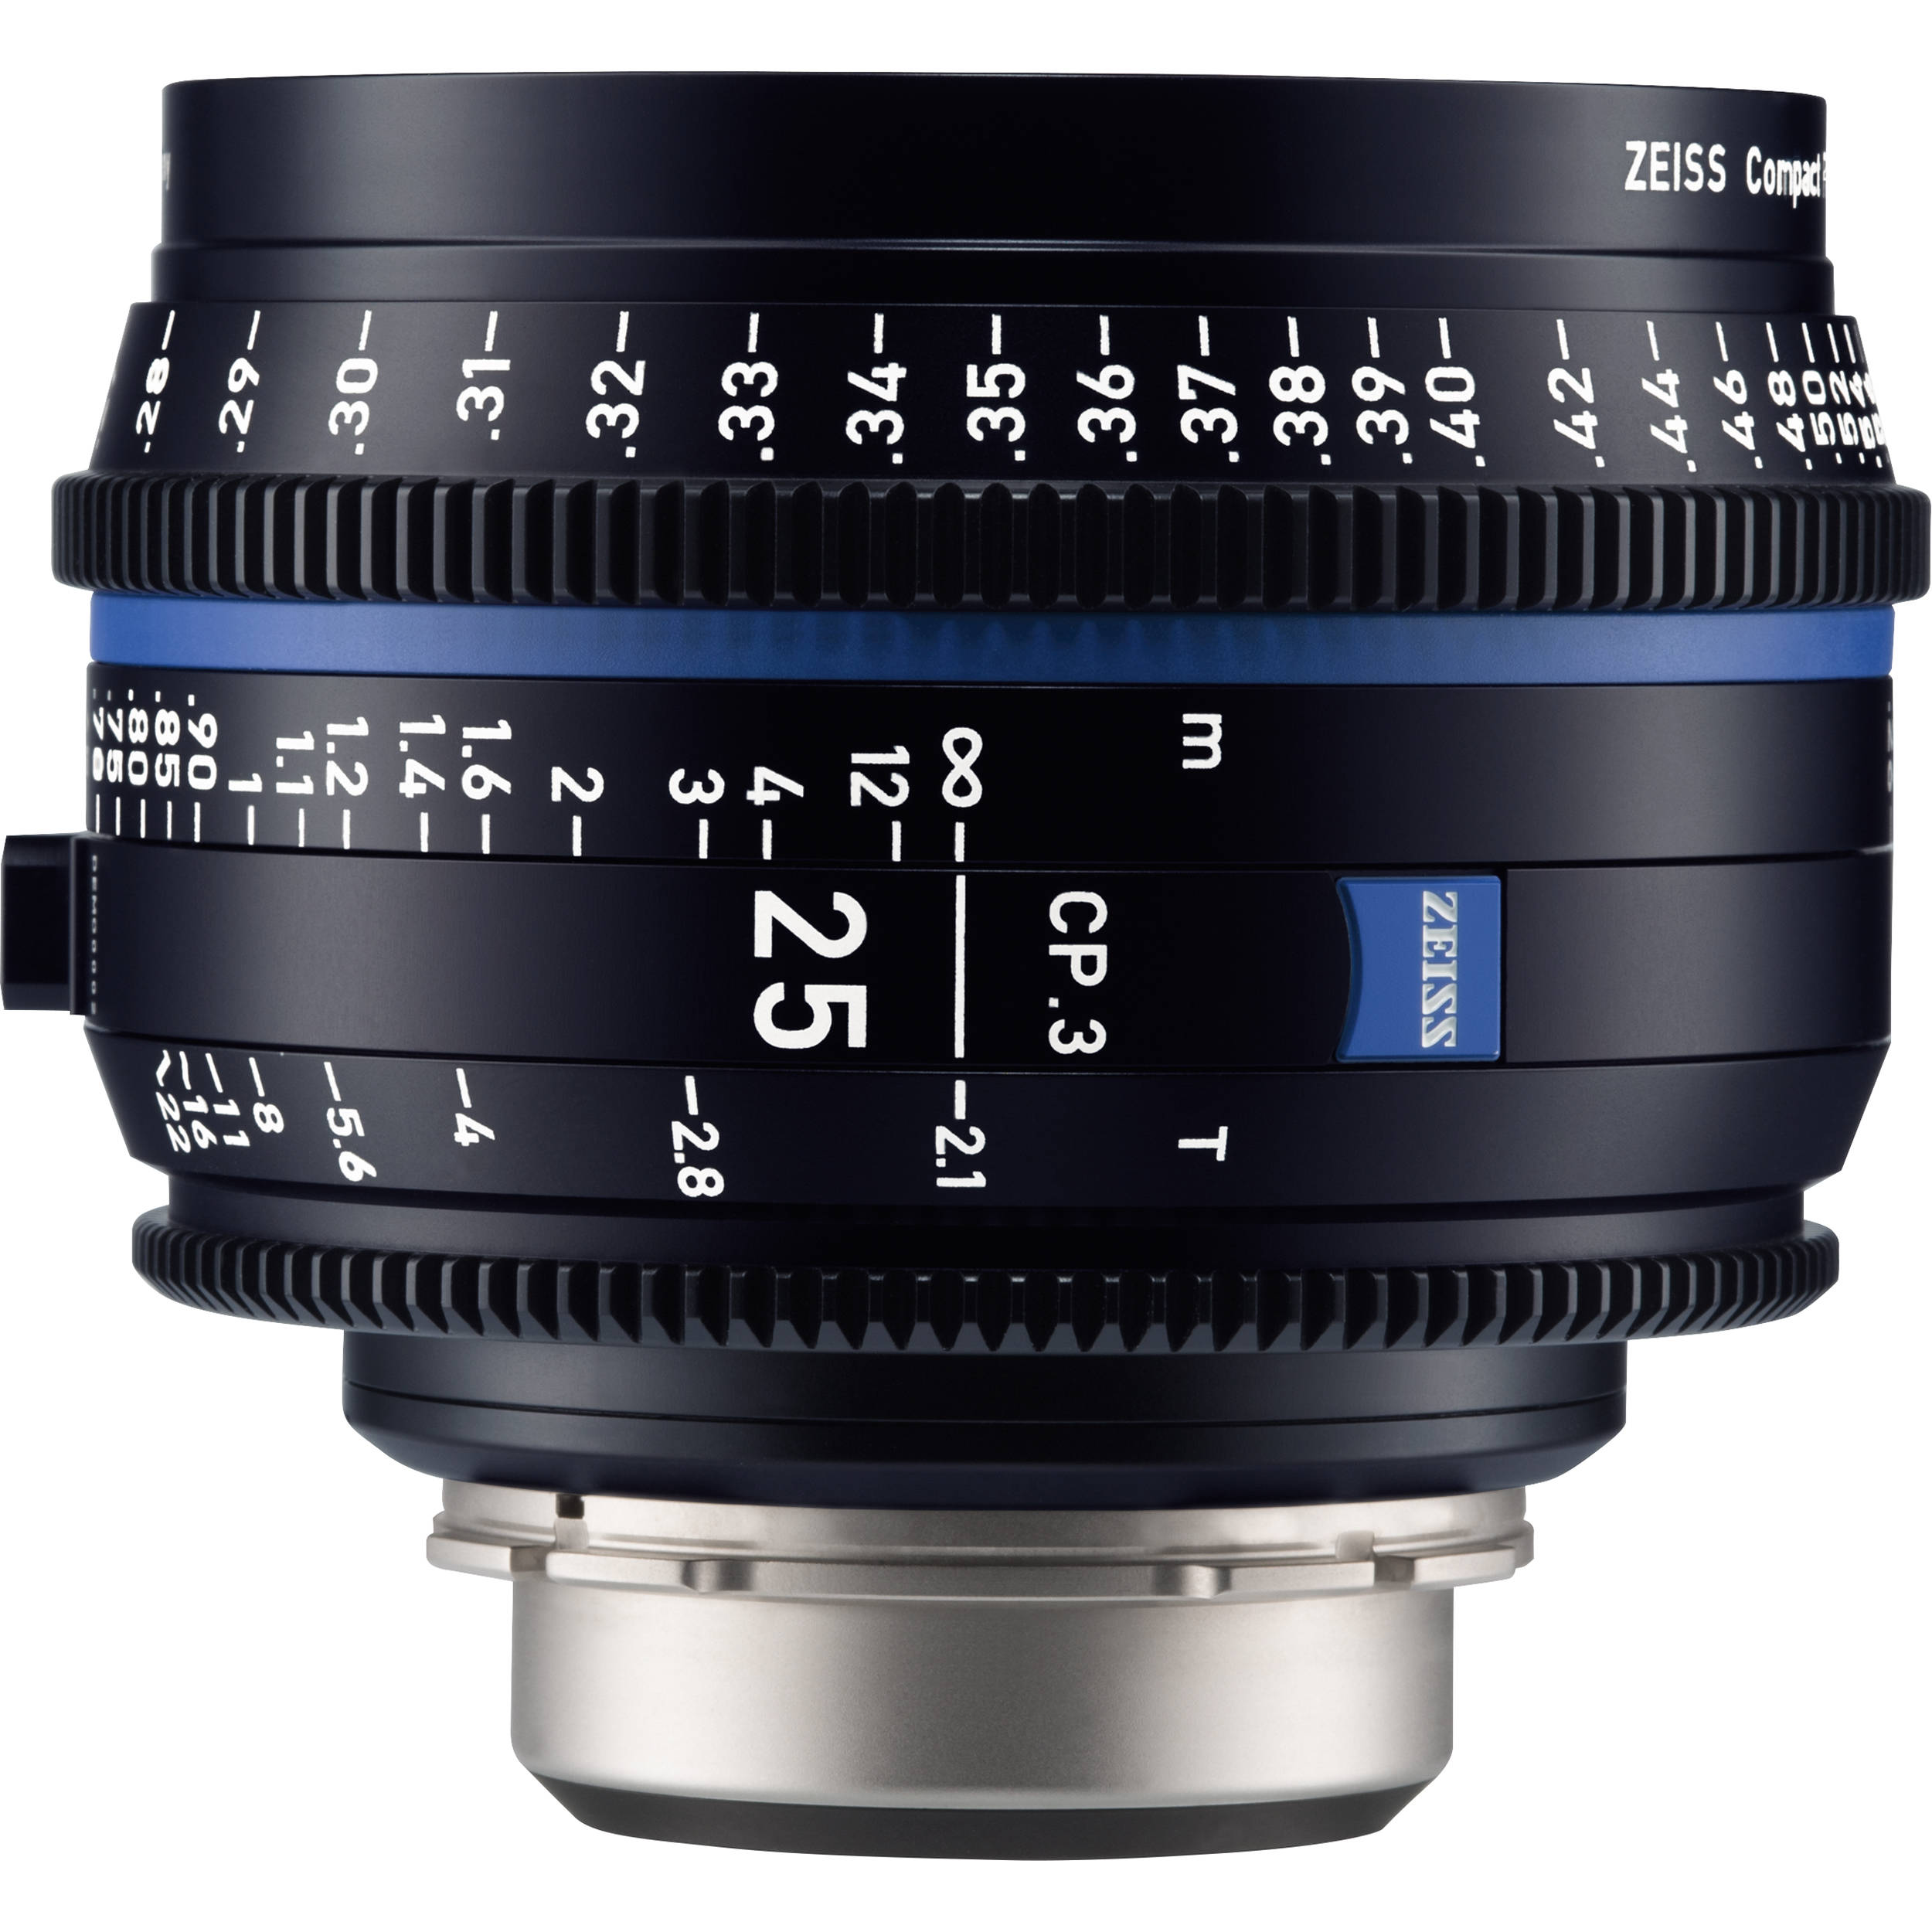 Affordable-ish Pro Cine Prime Lenses 6